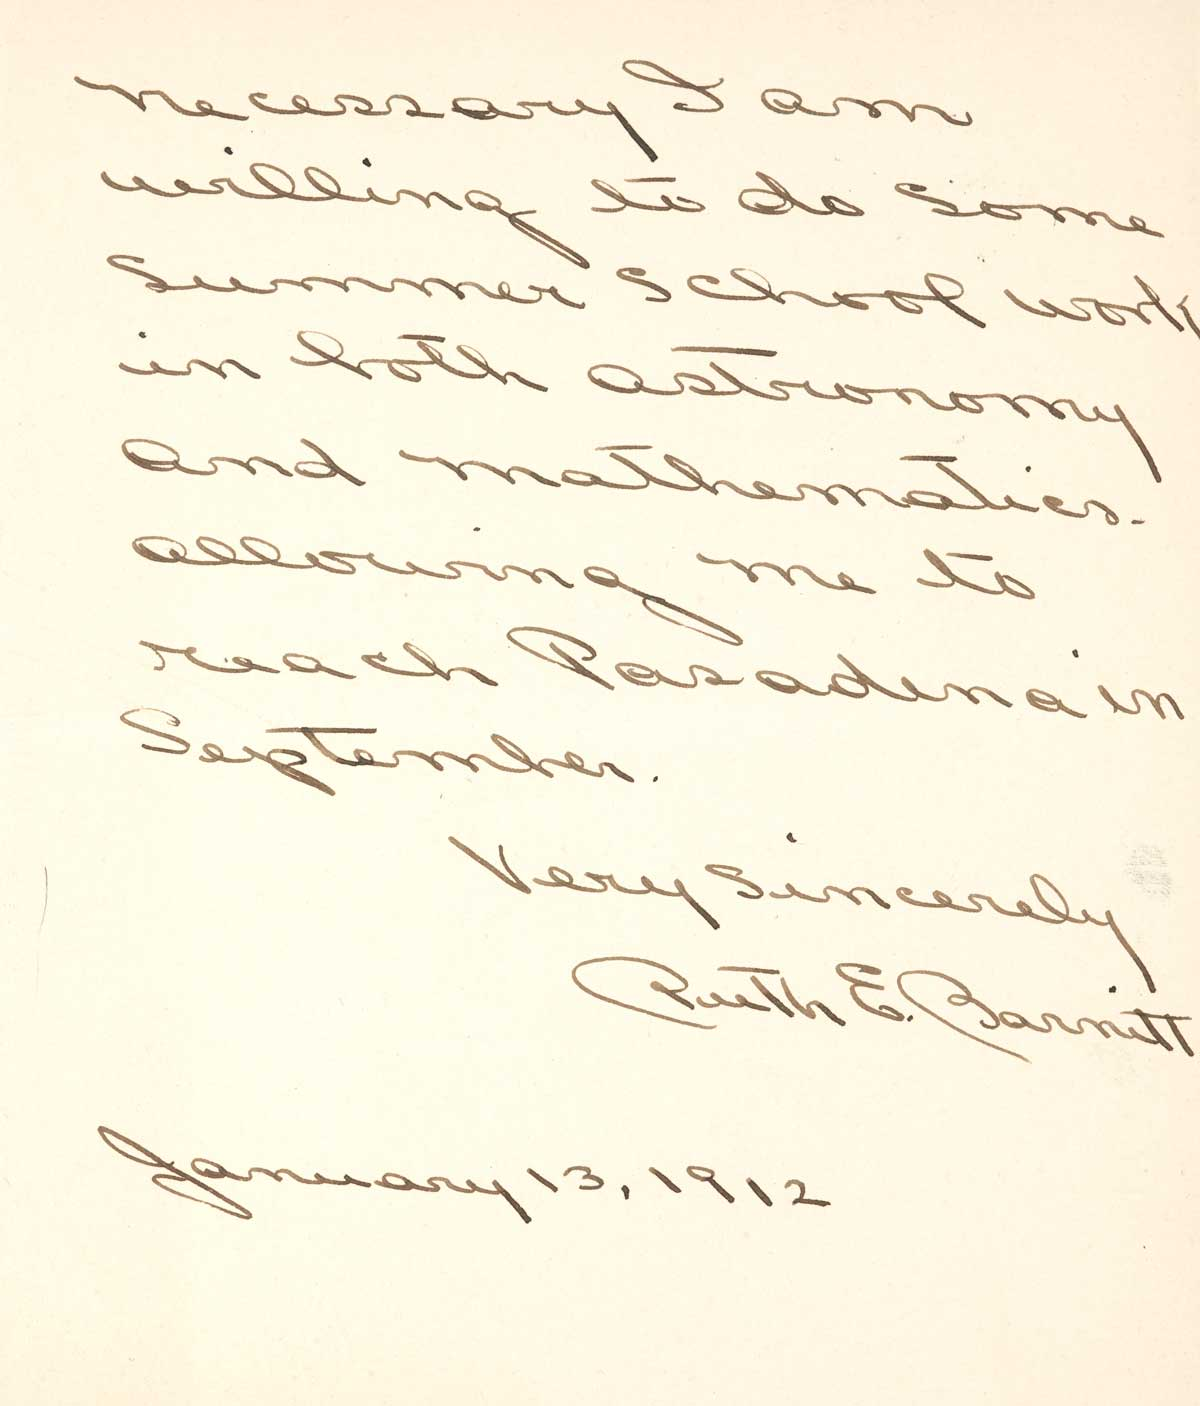 Letter to F.H. Seares of Mt. Wilson observatory from Ruth Barnett p4 | Image courtesy of the Observatories of the Carnegie Institution for Science Collection at the Huntington Library, San Marino, California